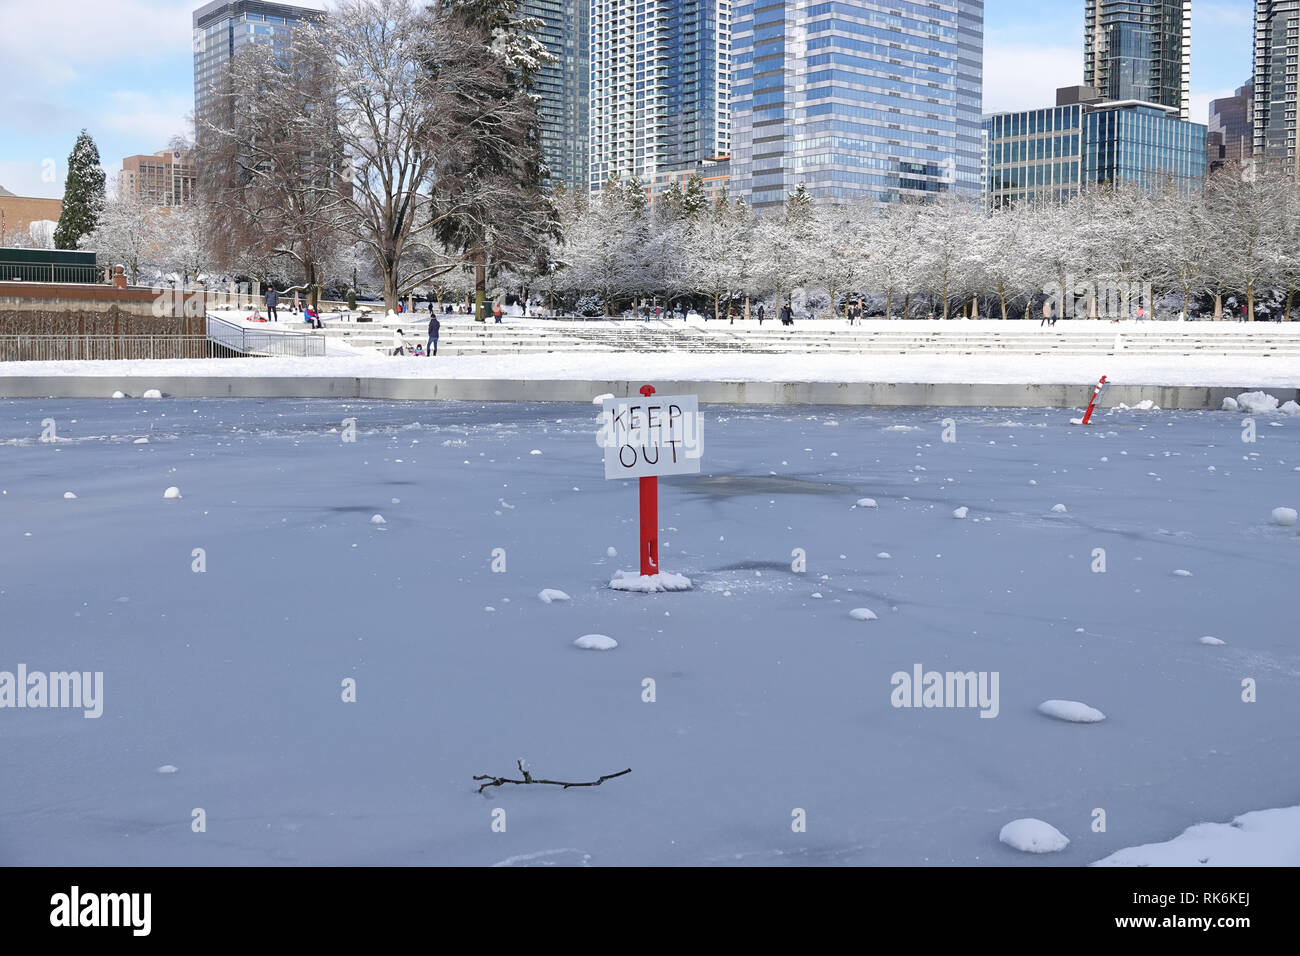 Bellevue, WA, USA. 9th Feb, 2019. The Downtown Park lake is frozen and emergency Keep Out signs are posted Stock Photo